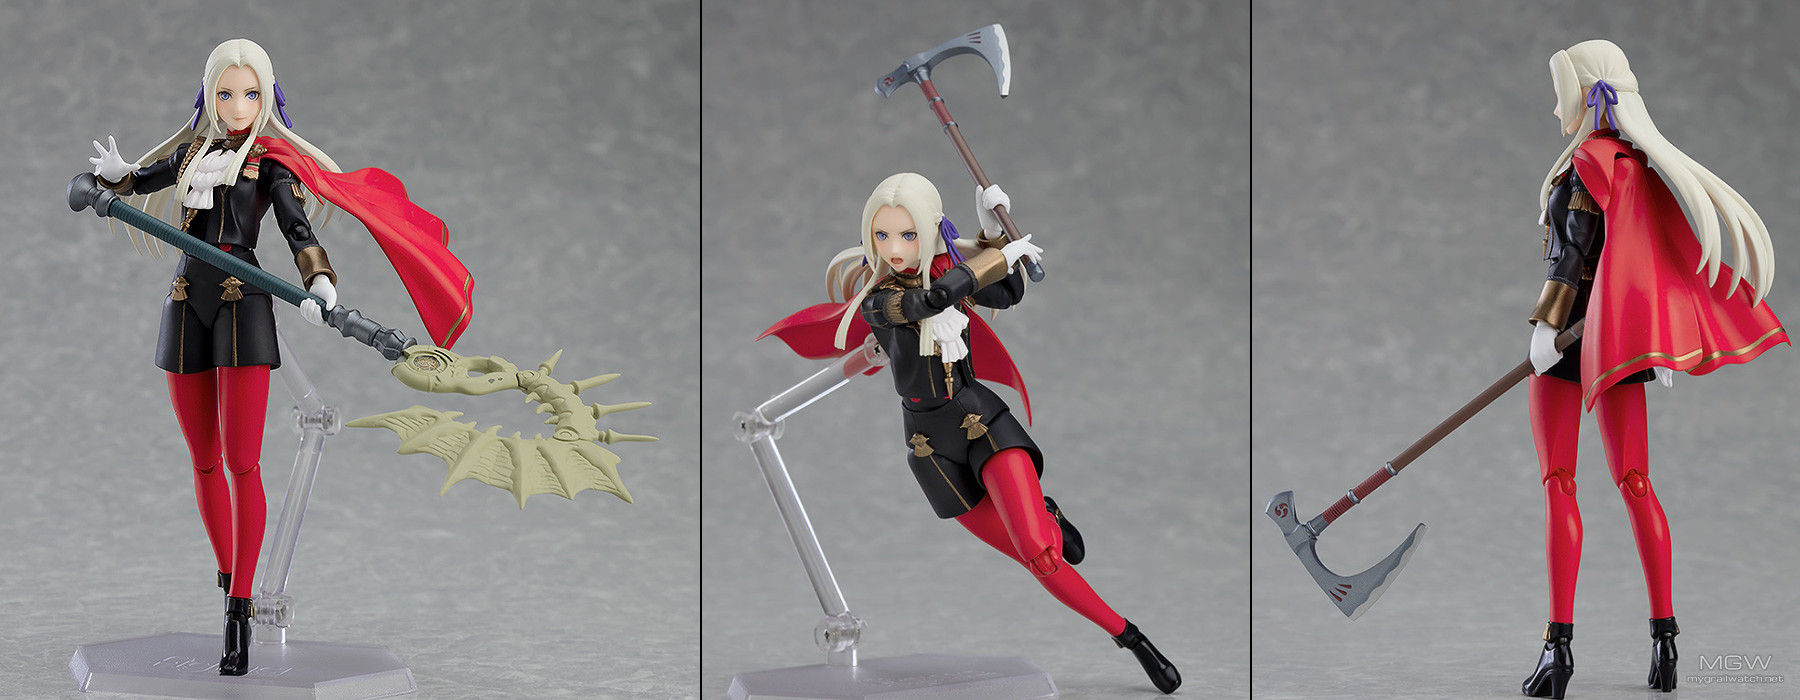 figma Edelgard von Hresvelg by Good Smile Company from Fire Emblem Three Houses